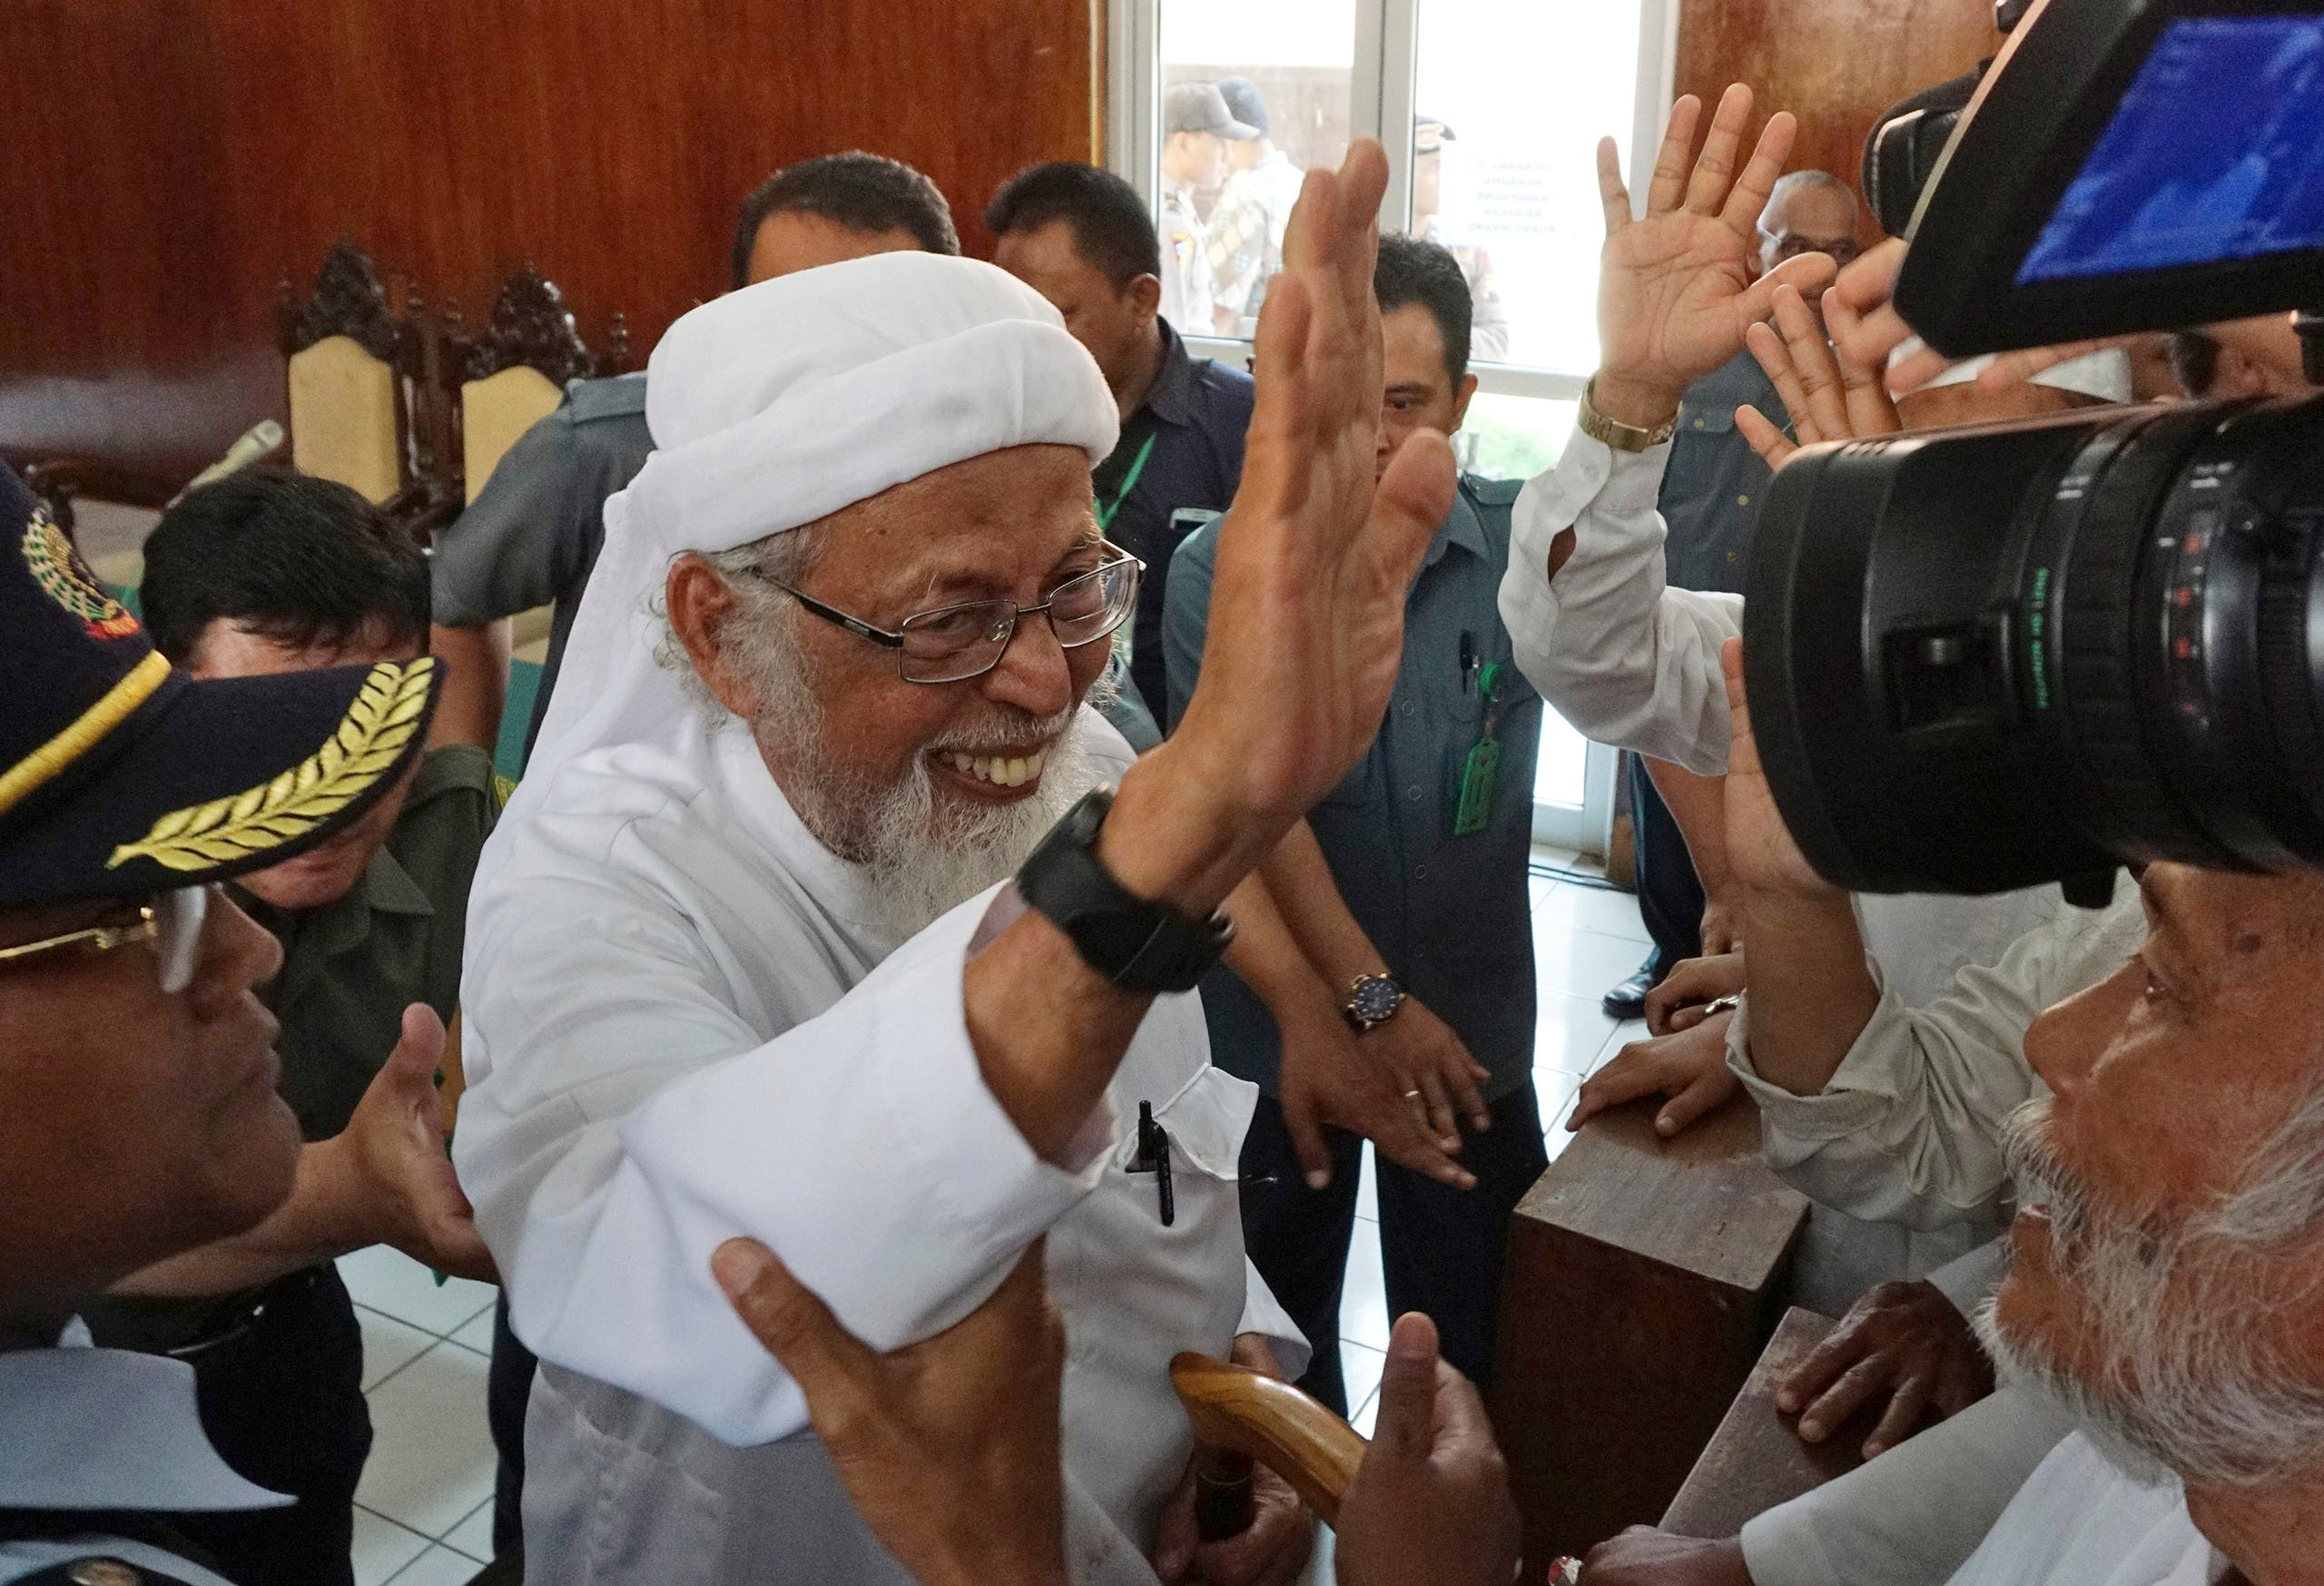 File photo of radical Islamic cleric Abu Bakar Bashir (center), waving at his supporters after his appeal hearing at the local district court in Cilacap, Central Java, Indonesia, on January 12, 2016. (AP)